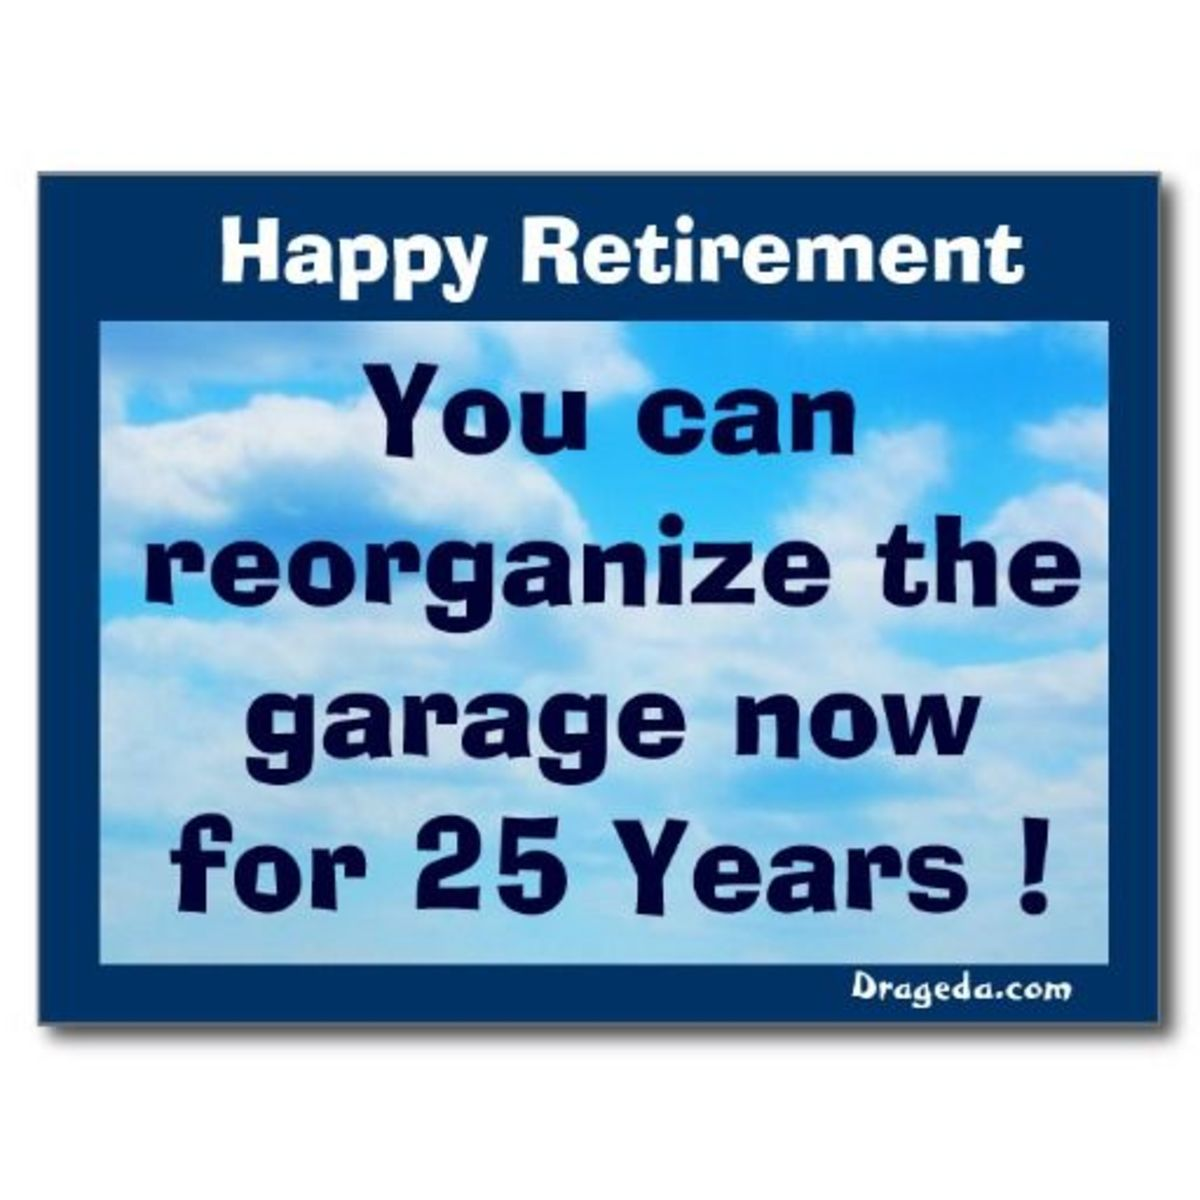 Happy retirement! You can reorganize the garage now for 25 years!